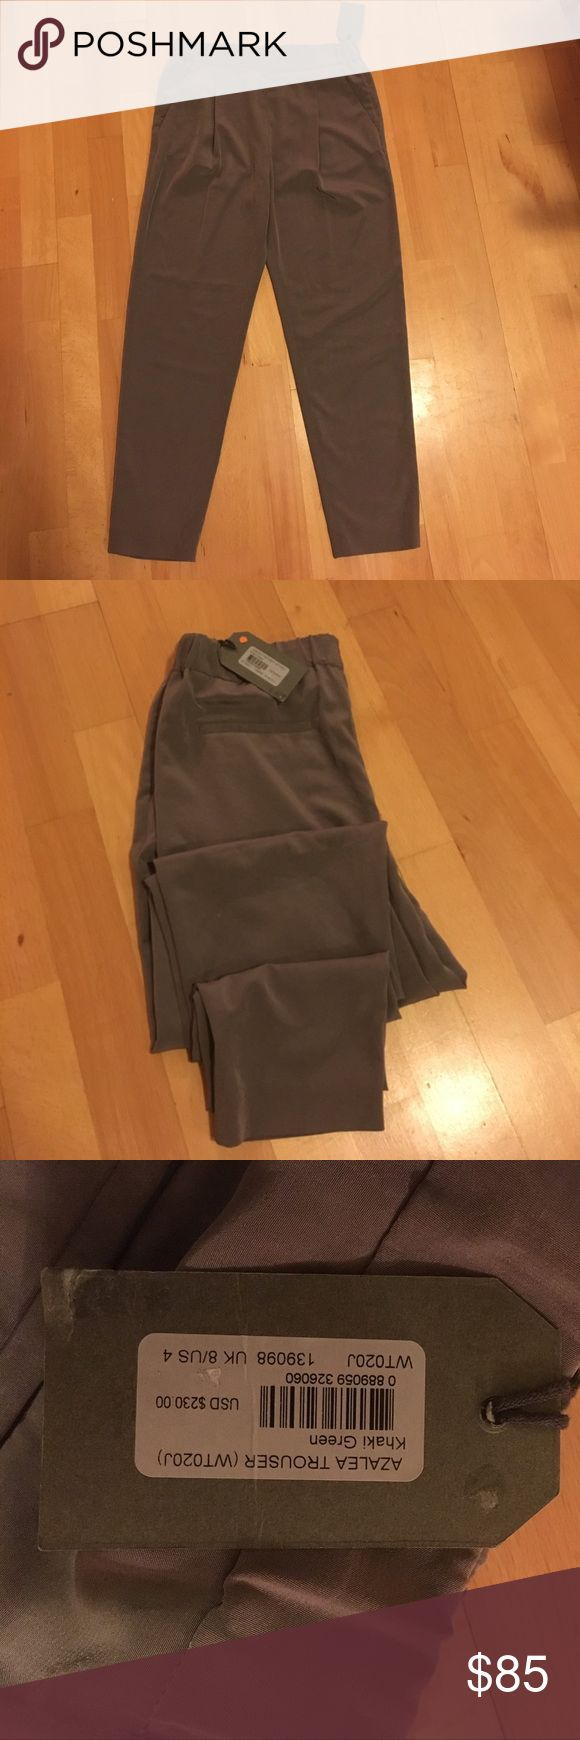 """All Saints Trouser Brand new, never been worn trouser fit. The waste is a little tight on me. I have a butt and it's a little hard to get them around which is why I'm selling. I just don't think I'll wear them. They are a Khaki green color. I am 5'5"""" and 128-130 lbs. All Saints Pants Trousers"""